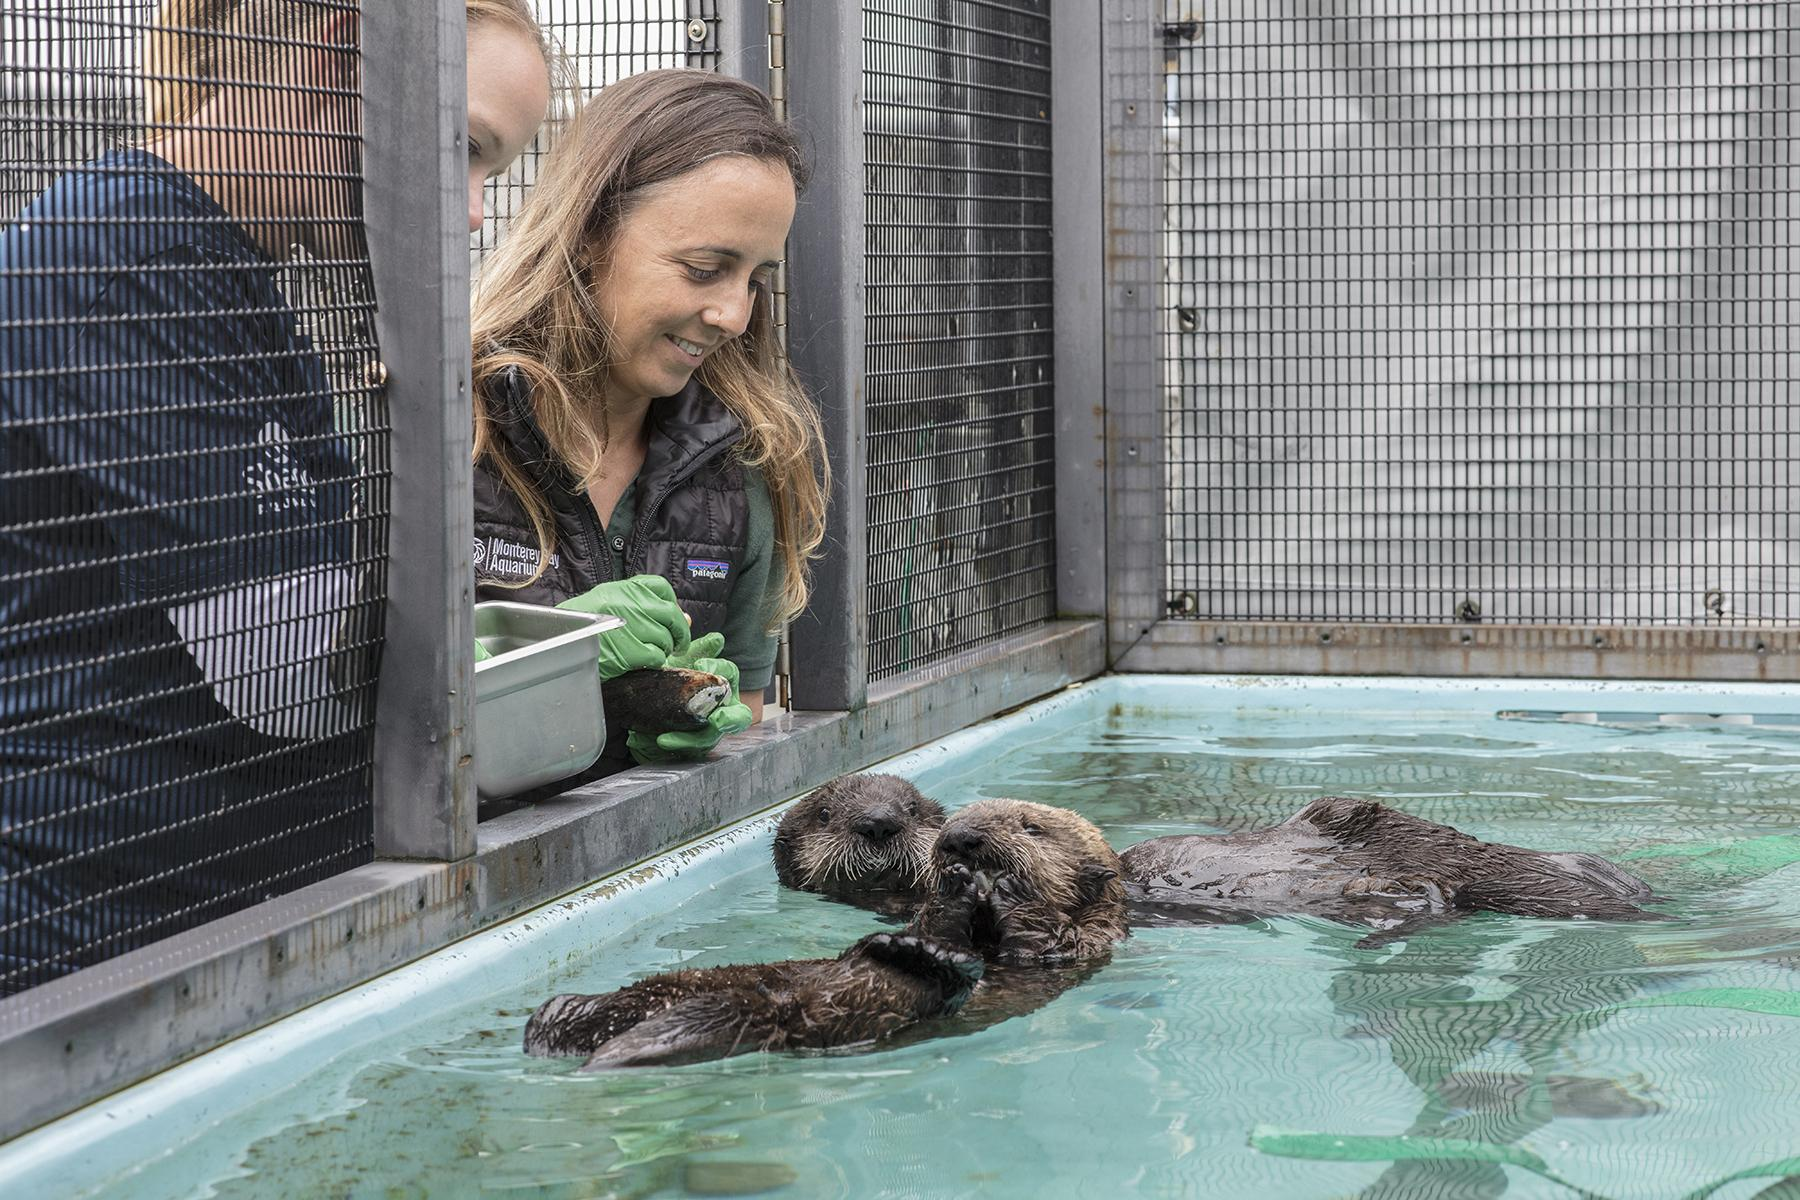 Shedd will continue to provide update on the development of two rescued sea otter pups. (Brenna Hernandez / Shedd Aquarium)